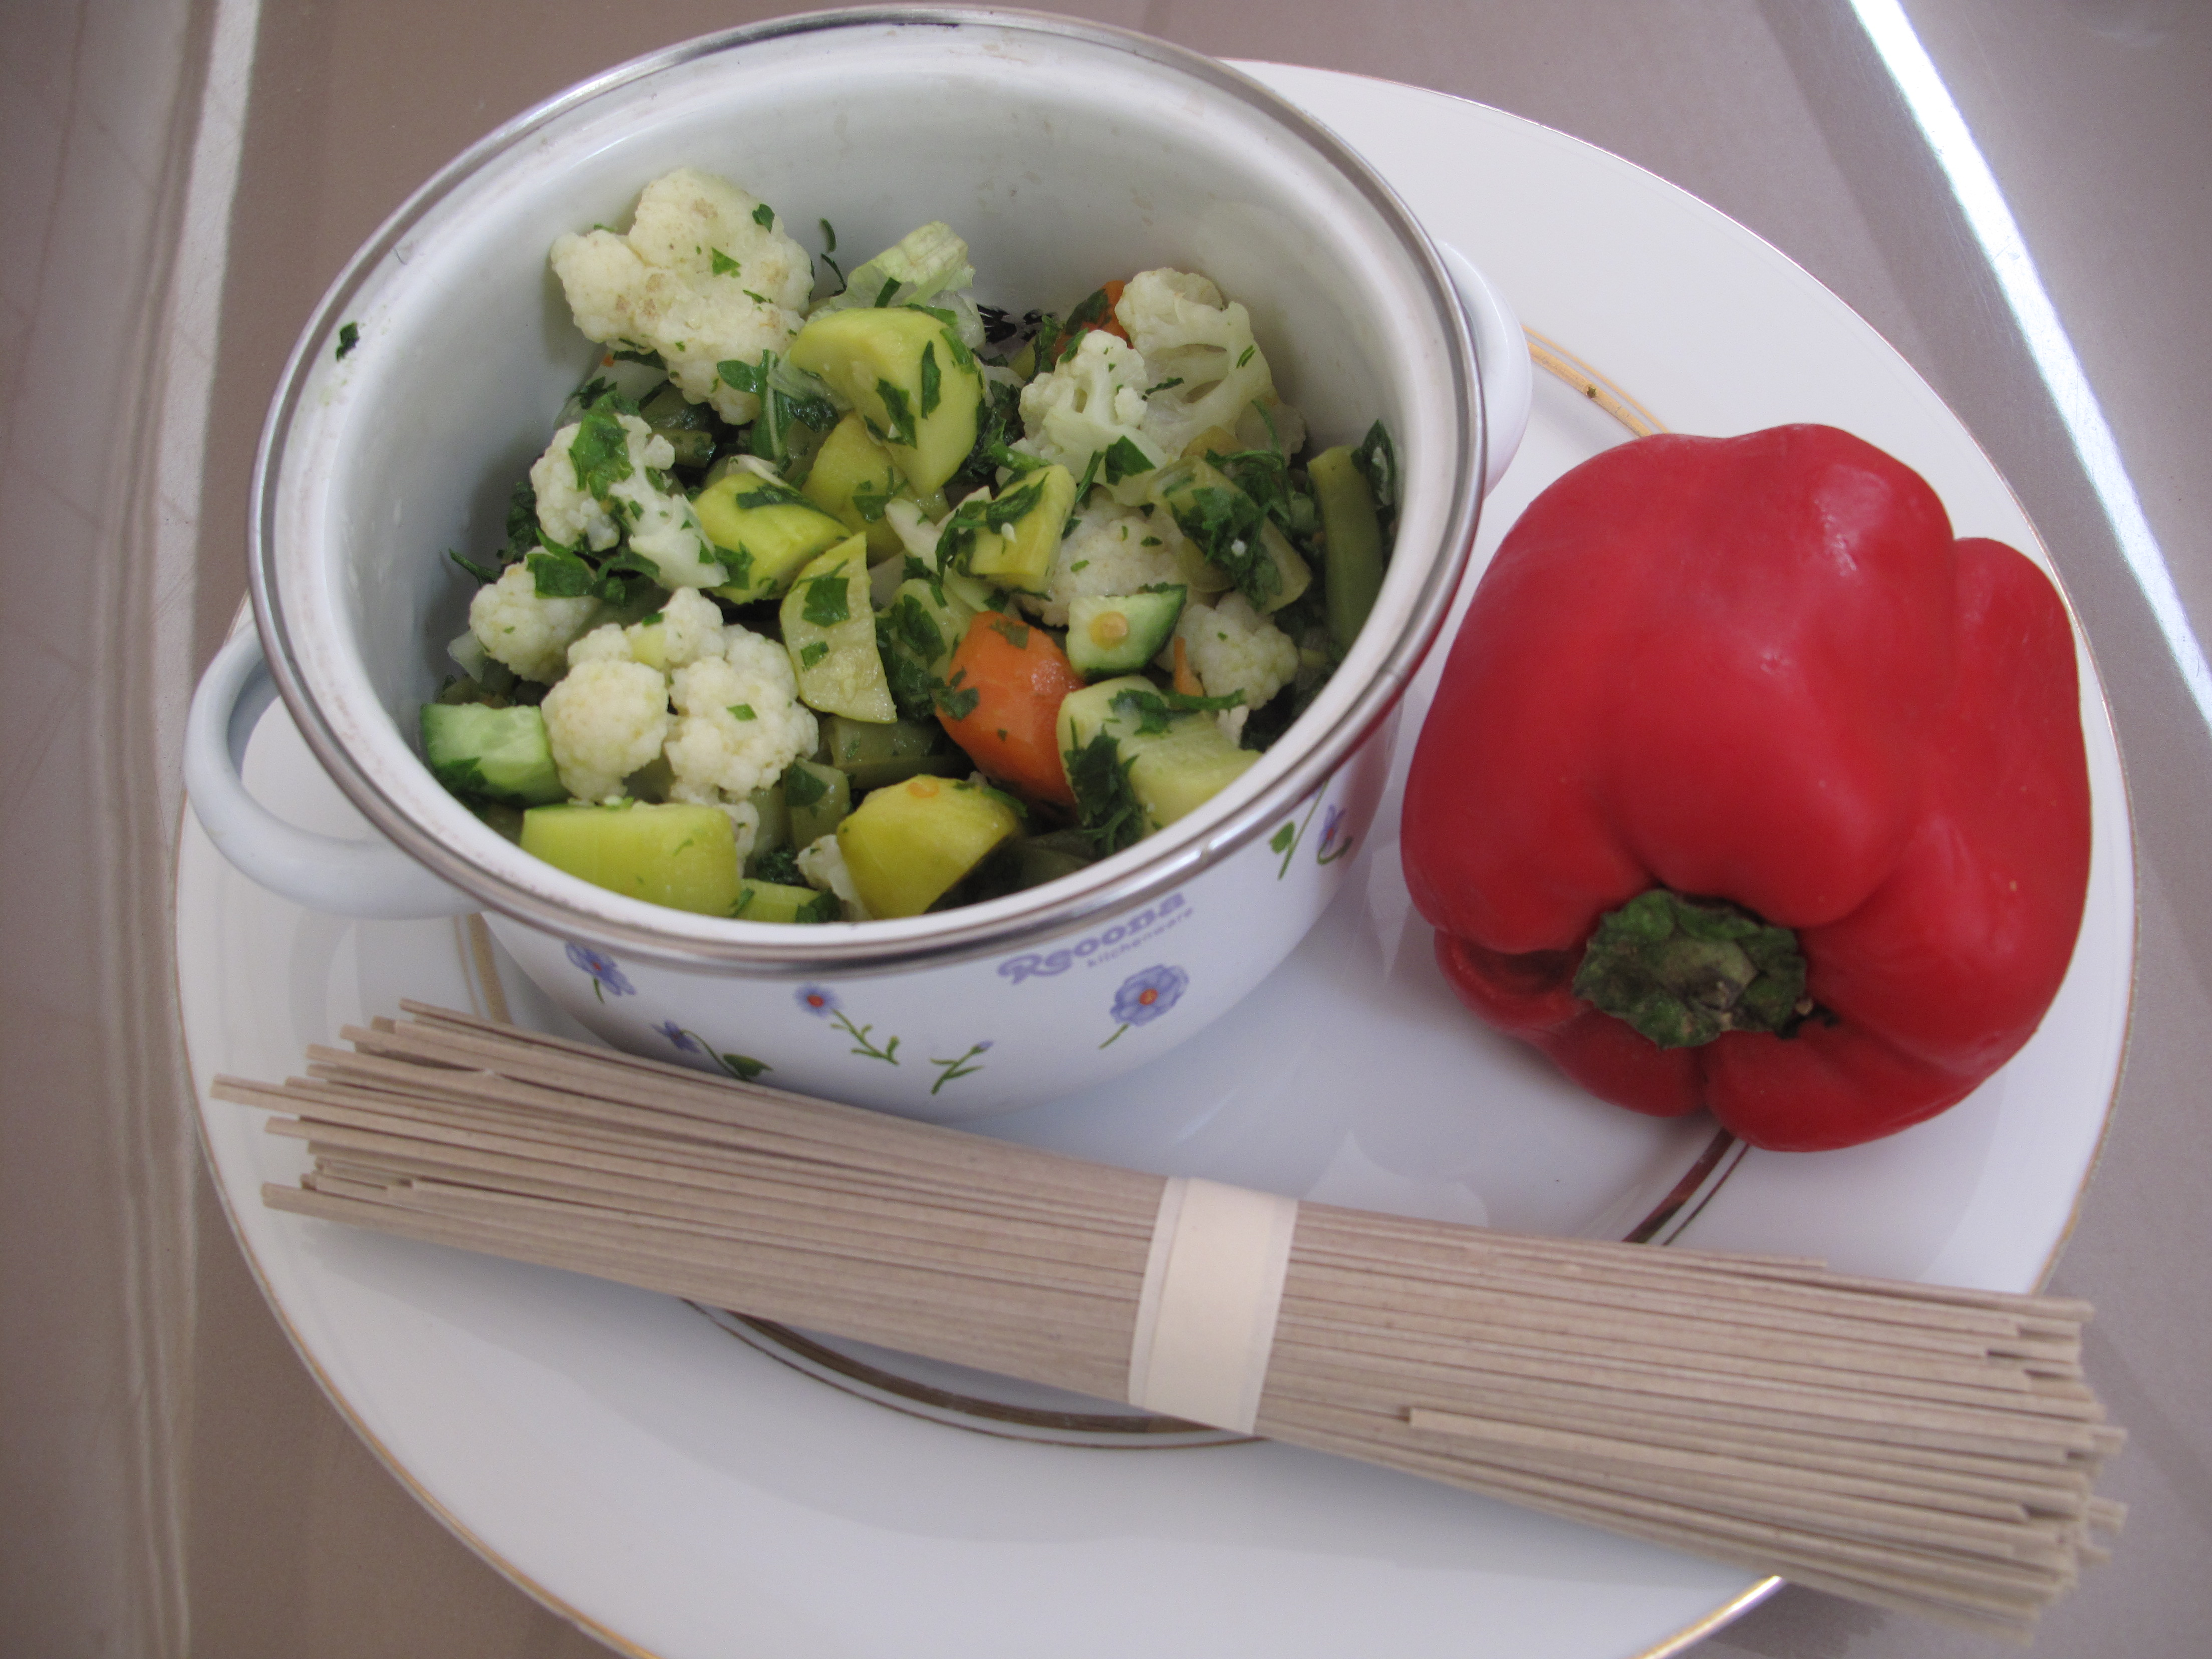 The ingredients: veggie salad, red pepper just to add color and crunch and 1 portion of rice noodles